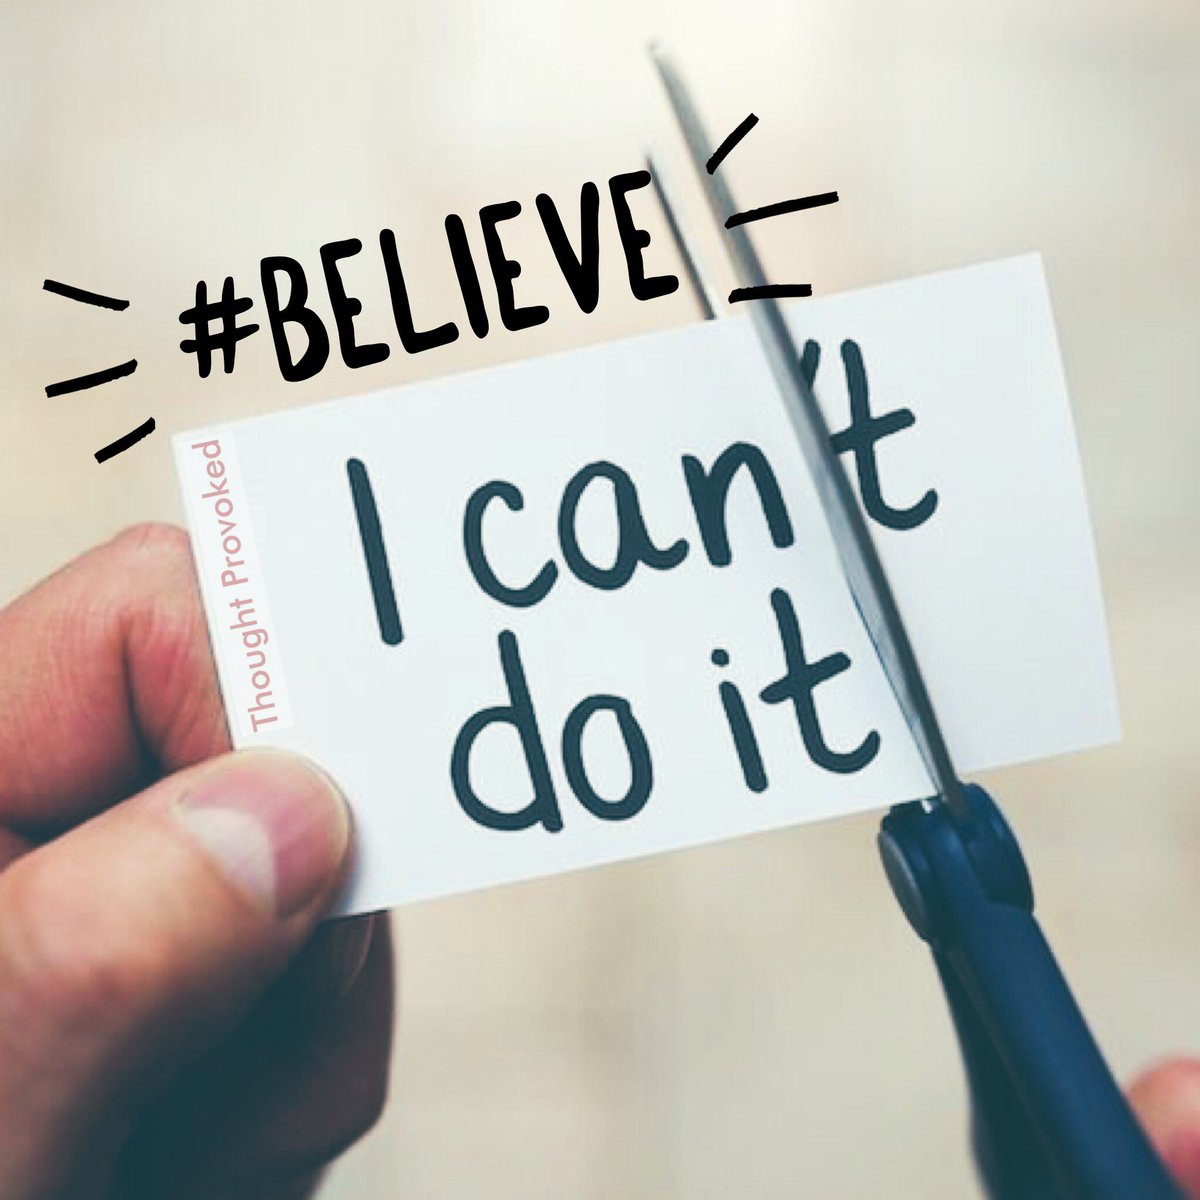 There's no such thing as can't - believe in yourself you're amazing    #FridayMotivation #JoyTrain #IQRTG #FridayThoughts #Motivation #Friyay #Believe #believeinyourself<br>http://pic.twitter.com/vQJm47R2gj